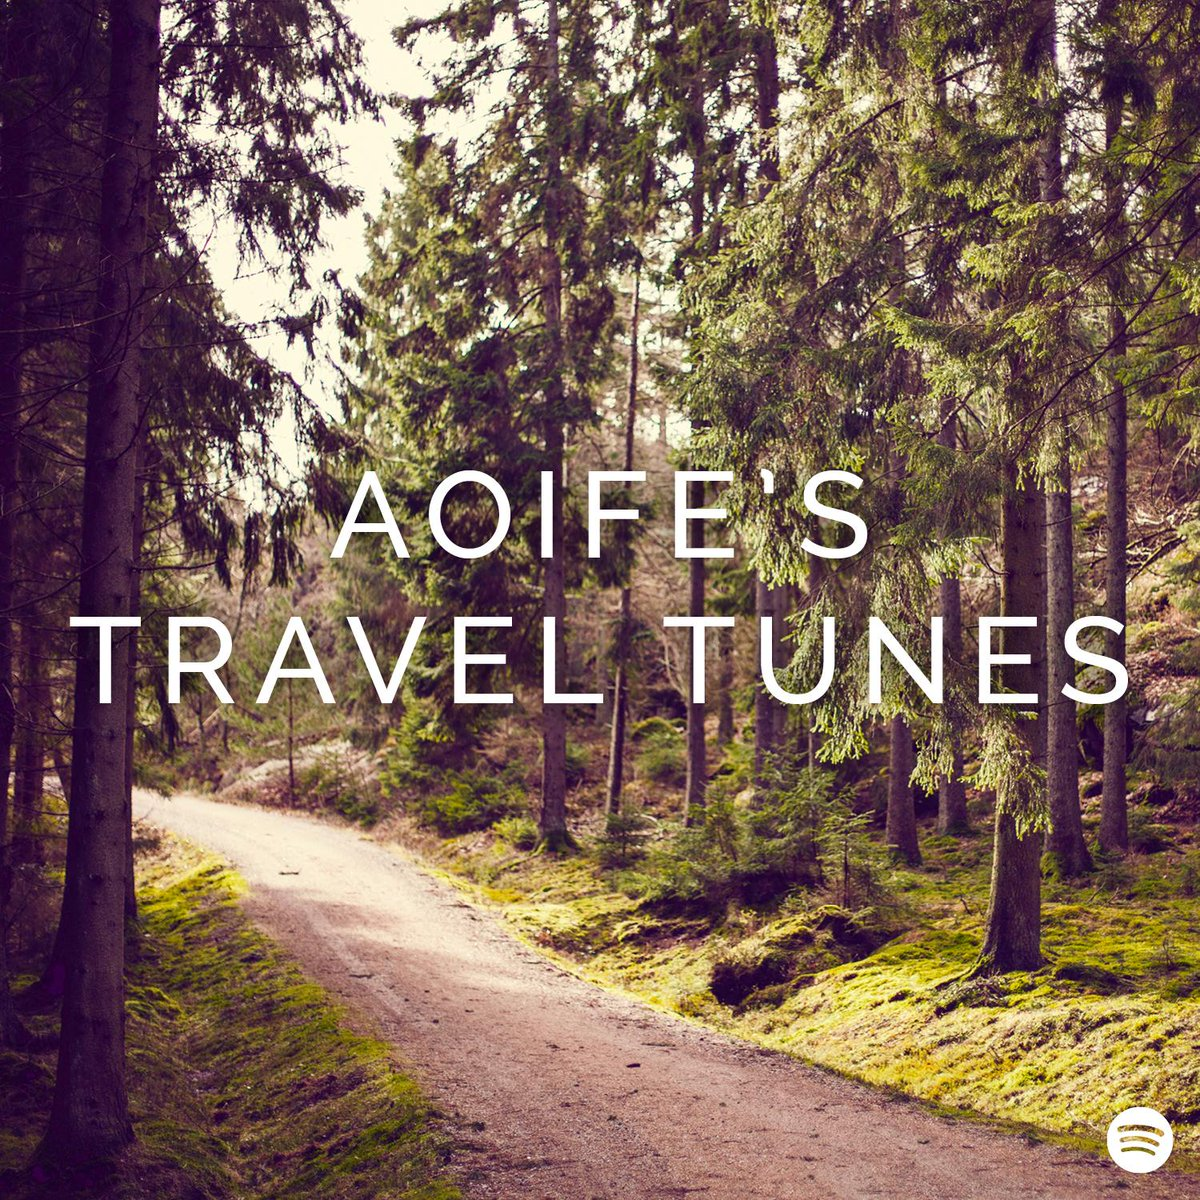 I made a @Spotify​ playlist while traveling this summer. Check it out here: http://t.co/2MPub3T8jC http://t.co/4Hk96Mn0Nu